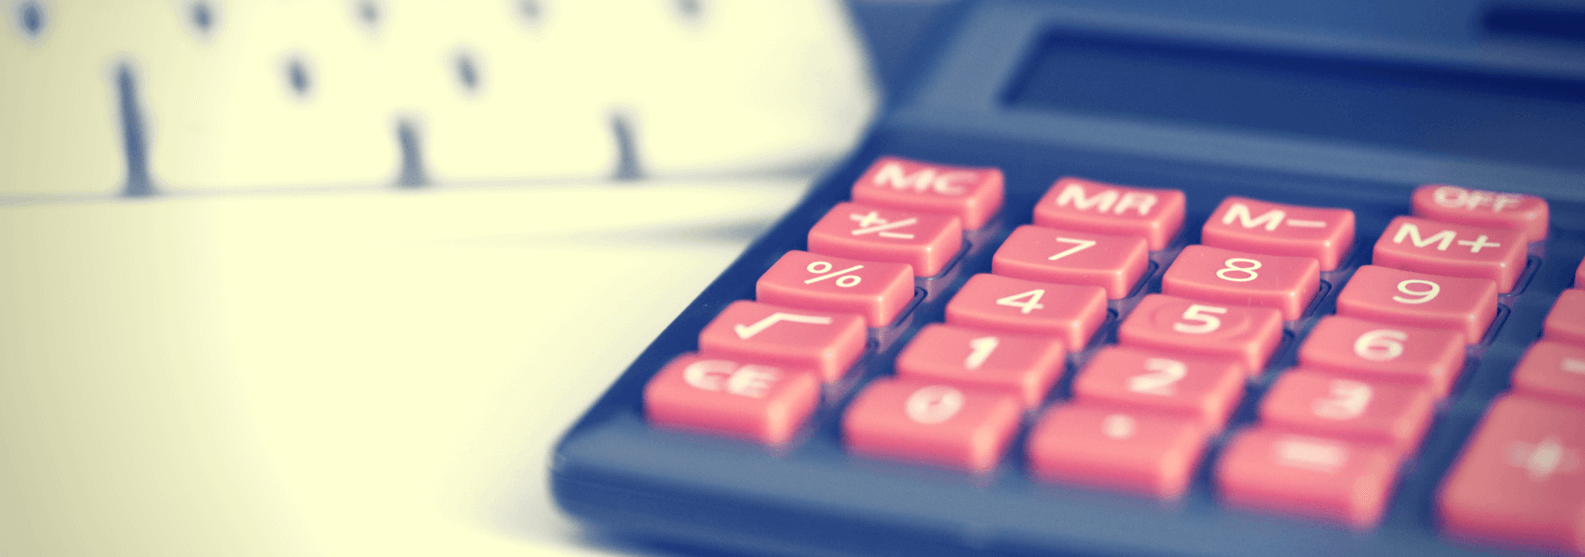 online payroll calculators for every situation you u2019d need